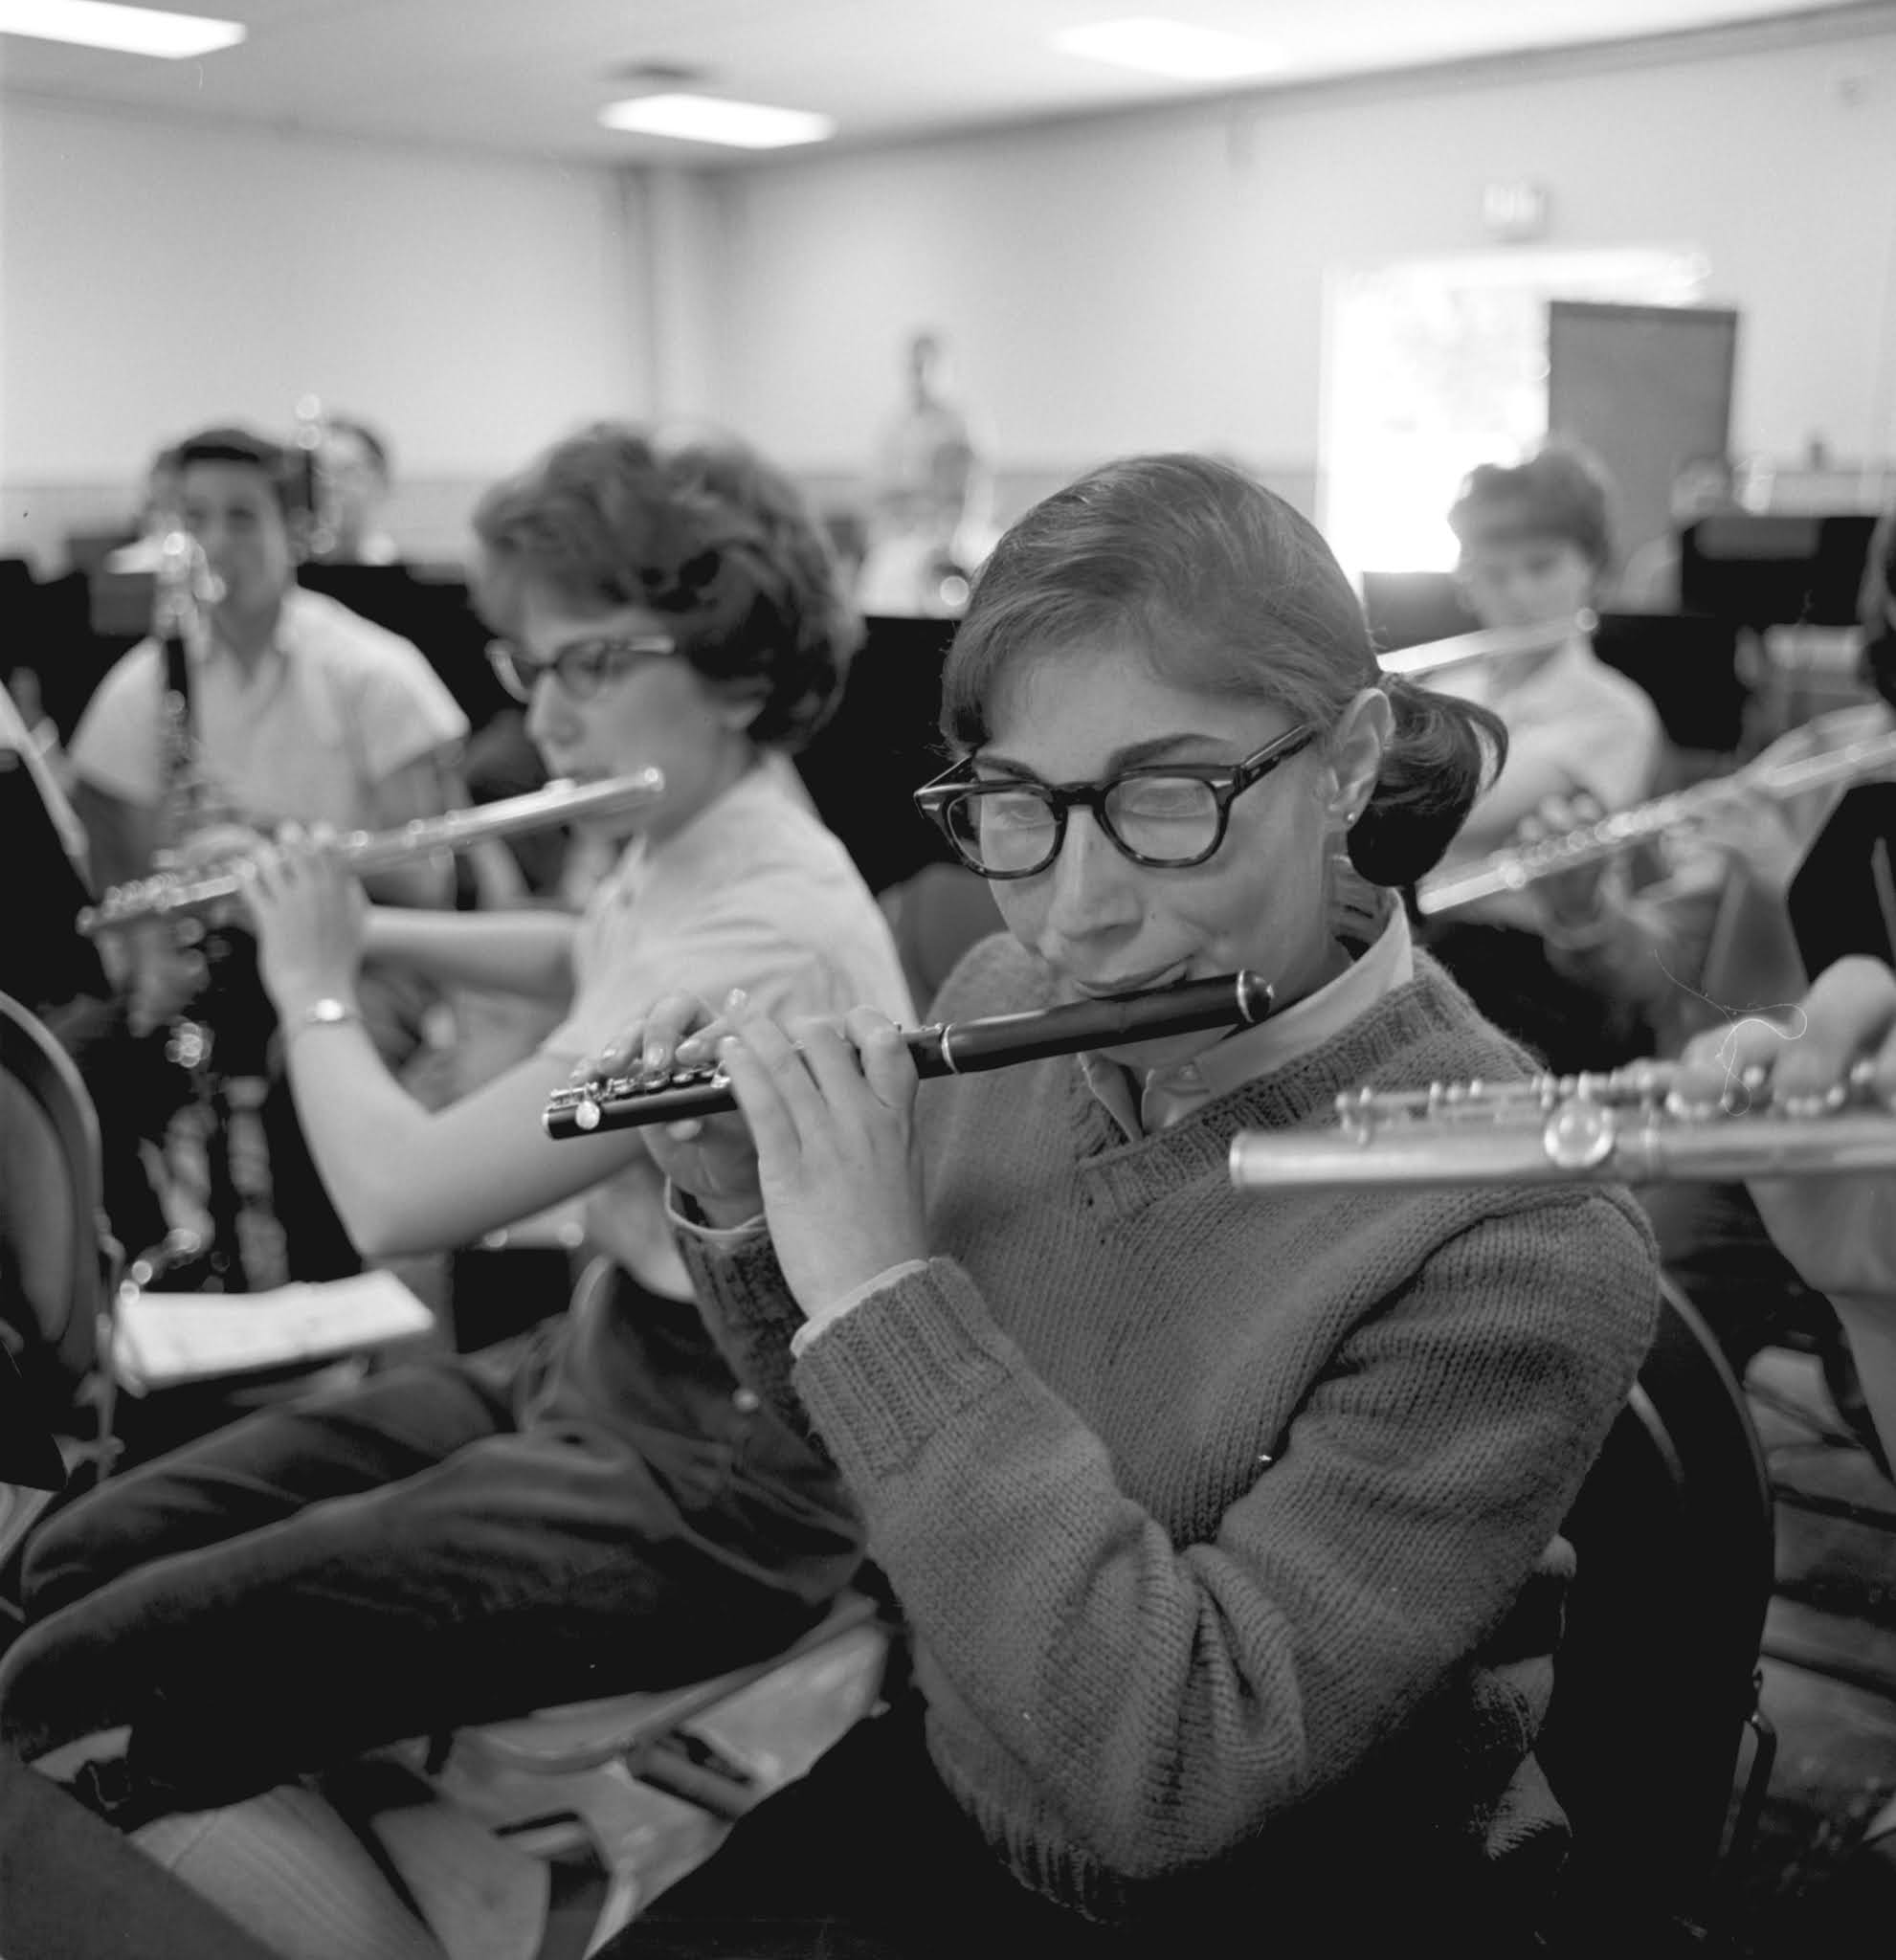 Caption: A student piccolo player in the summer of 1963, Credit: Interlochen Center for the Arts